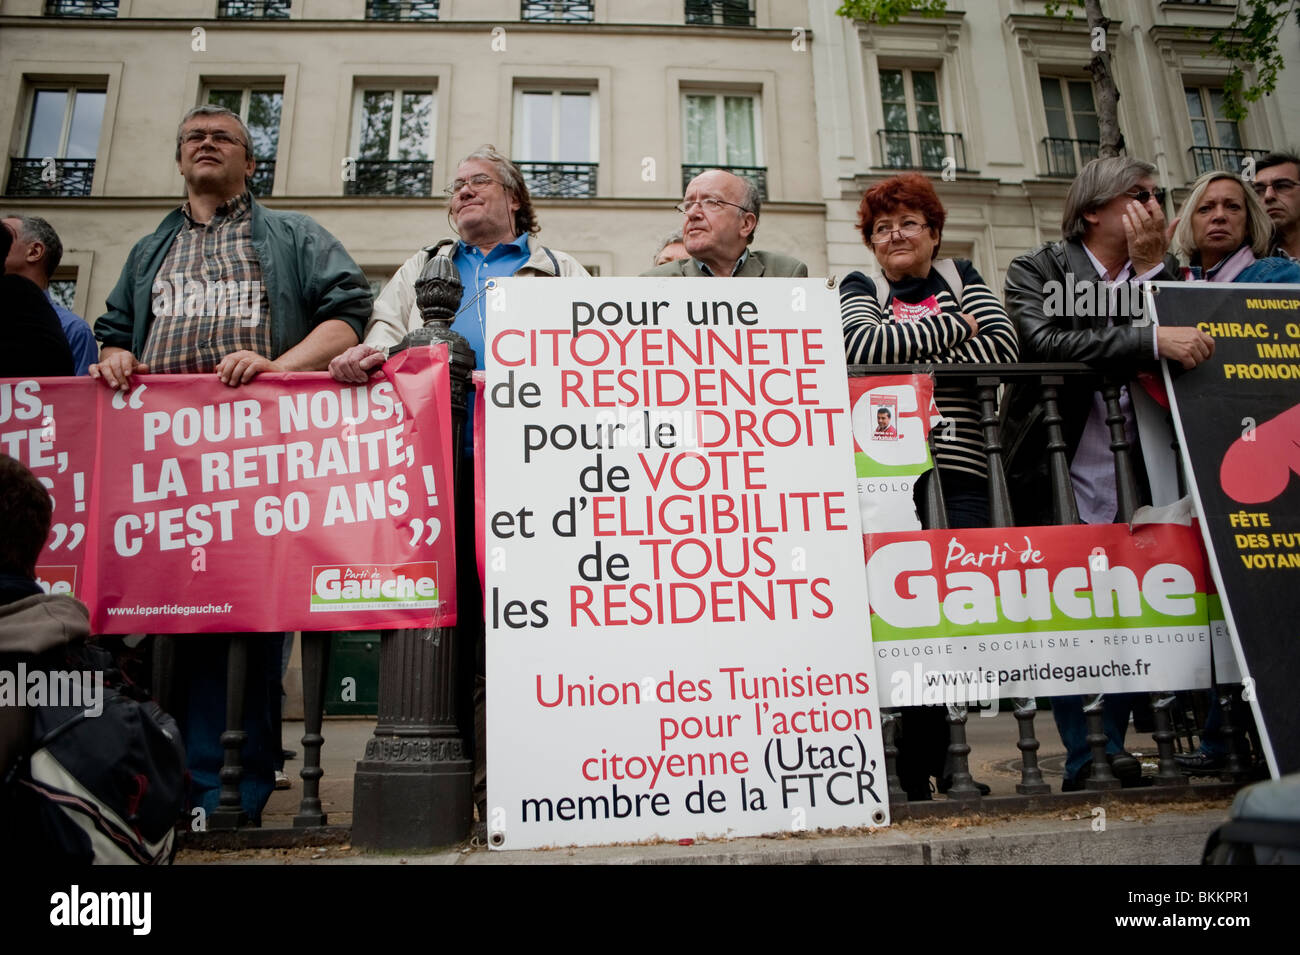 Seniors at France's trade unions, protests against government plans to overhaul the national pension system. - Stock Image